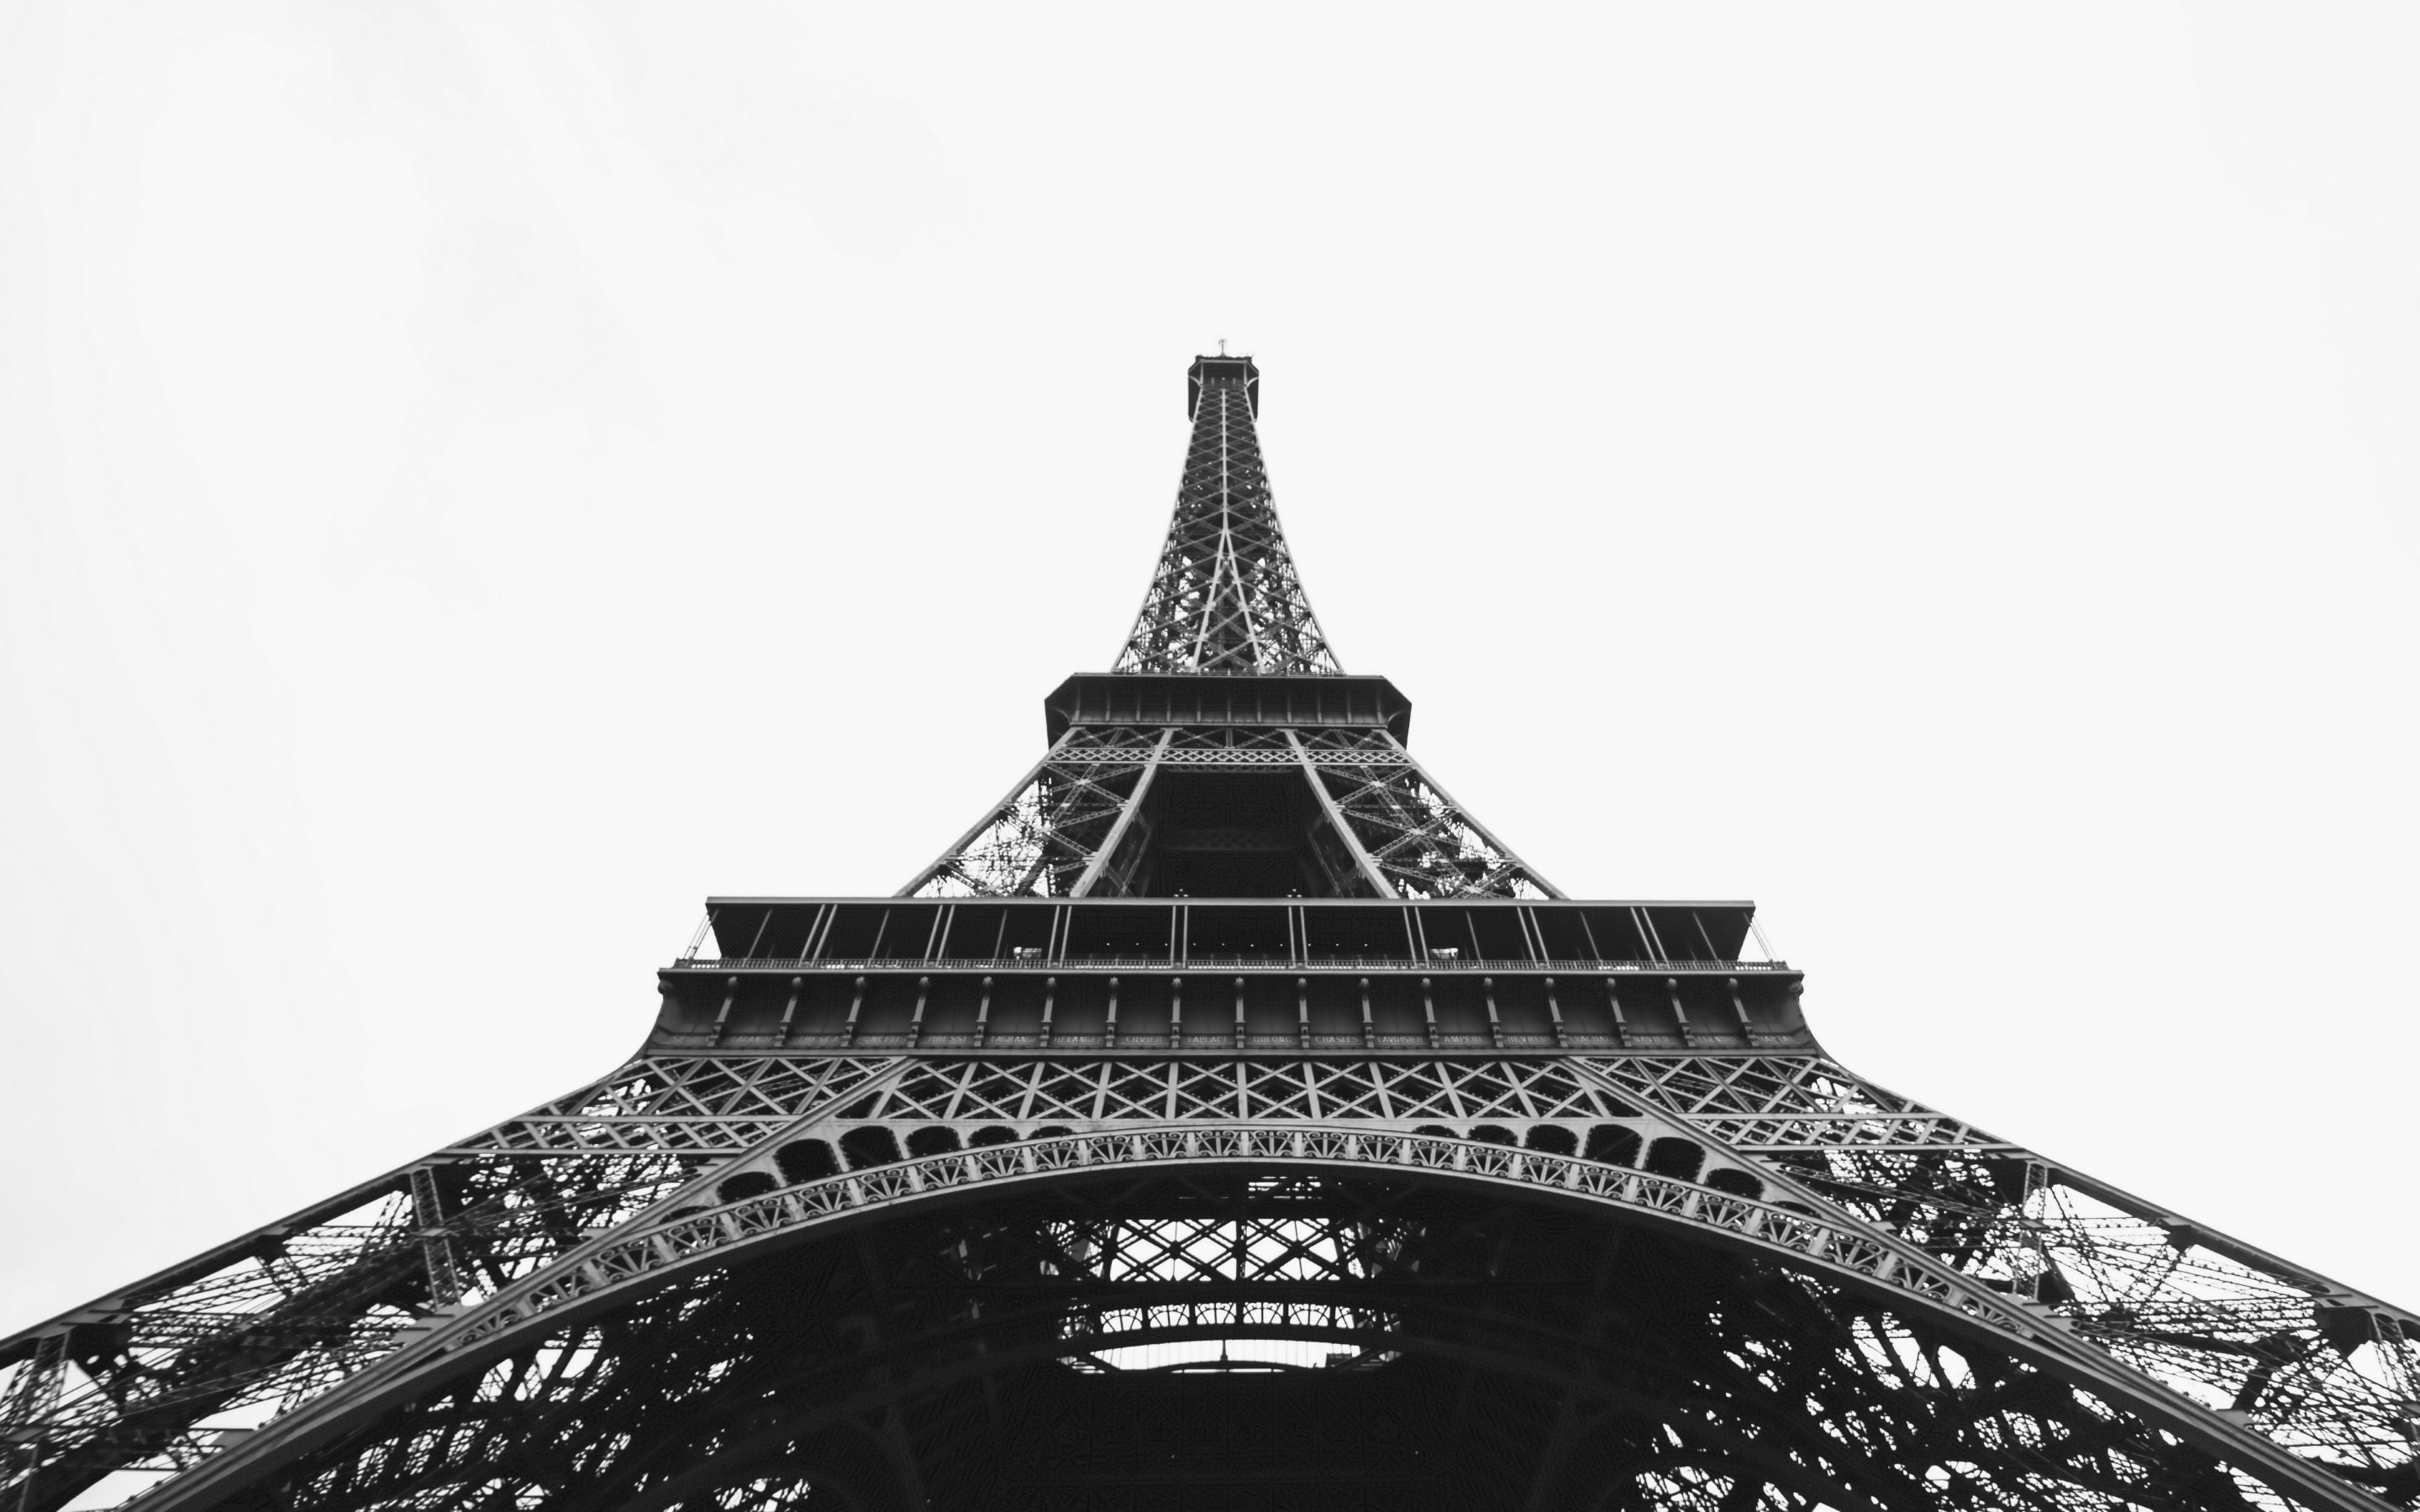 4K HD Wallpaper: Eiffel Tower in Black and White